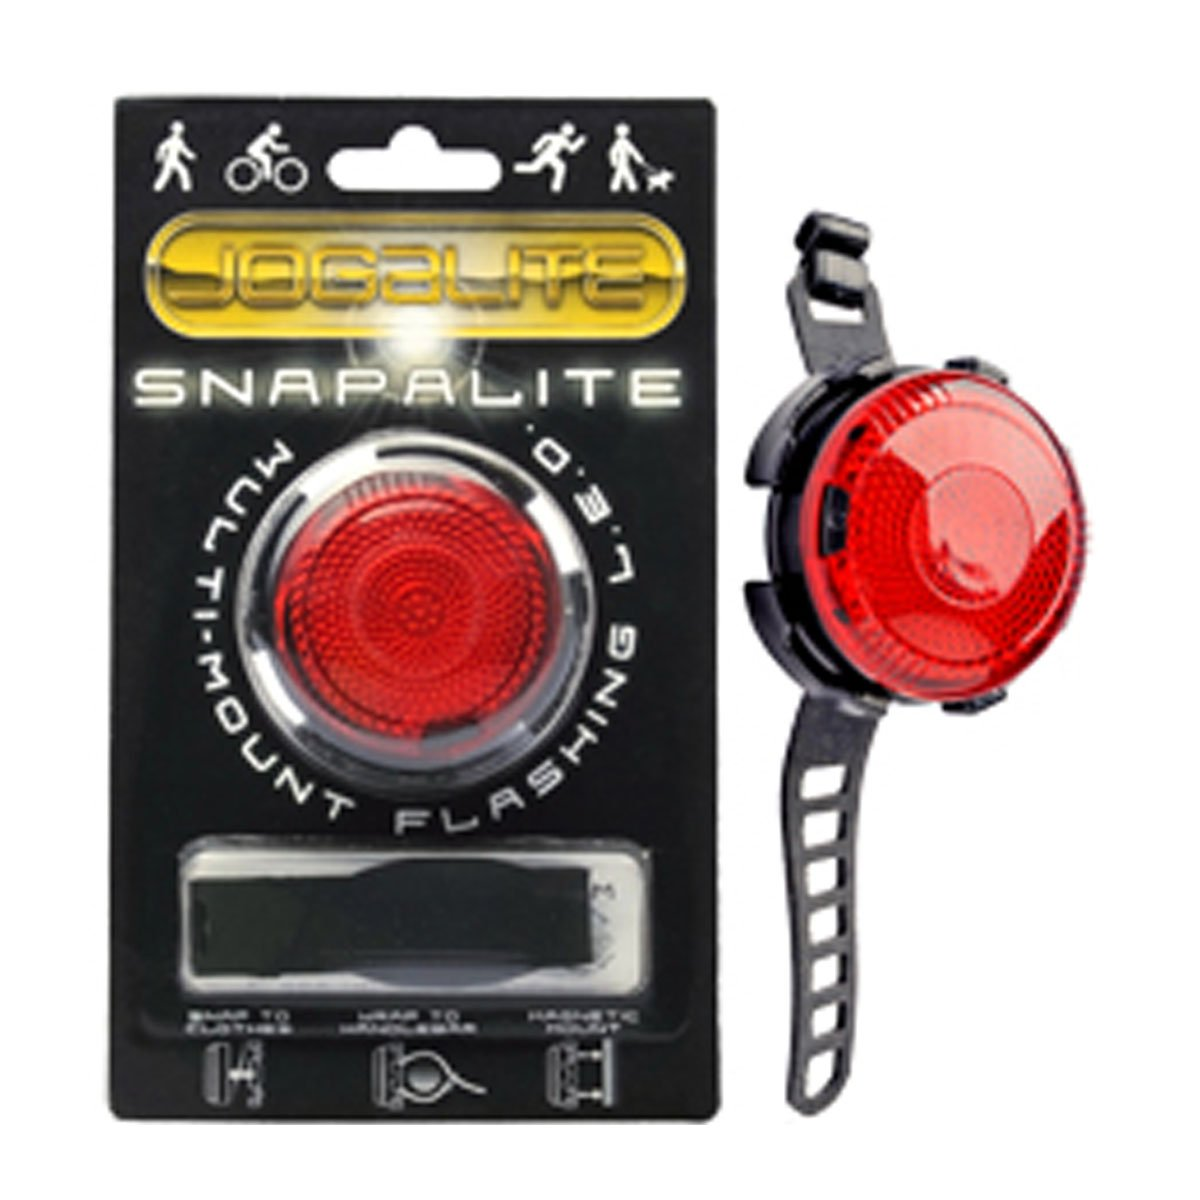 Jogalite Snapalite LED Snap On Strobe Light